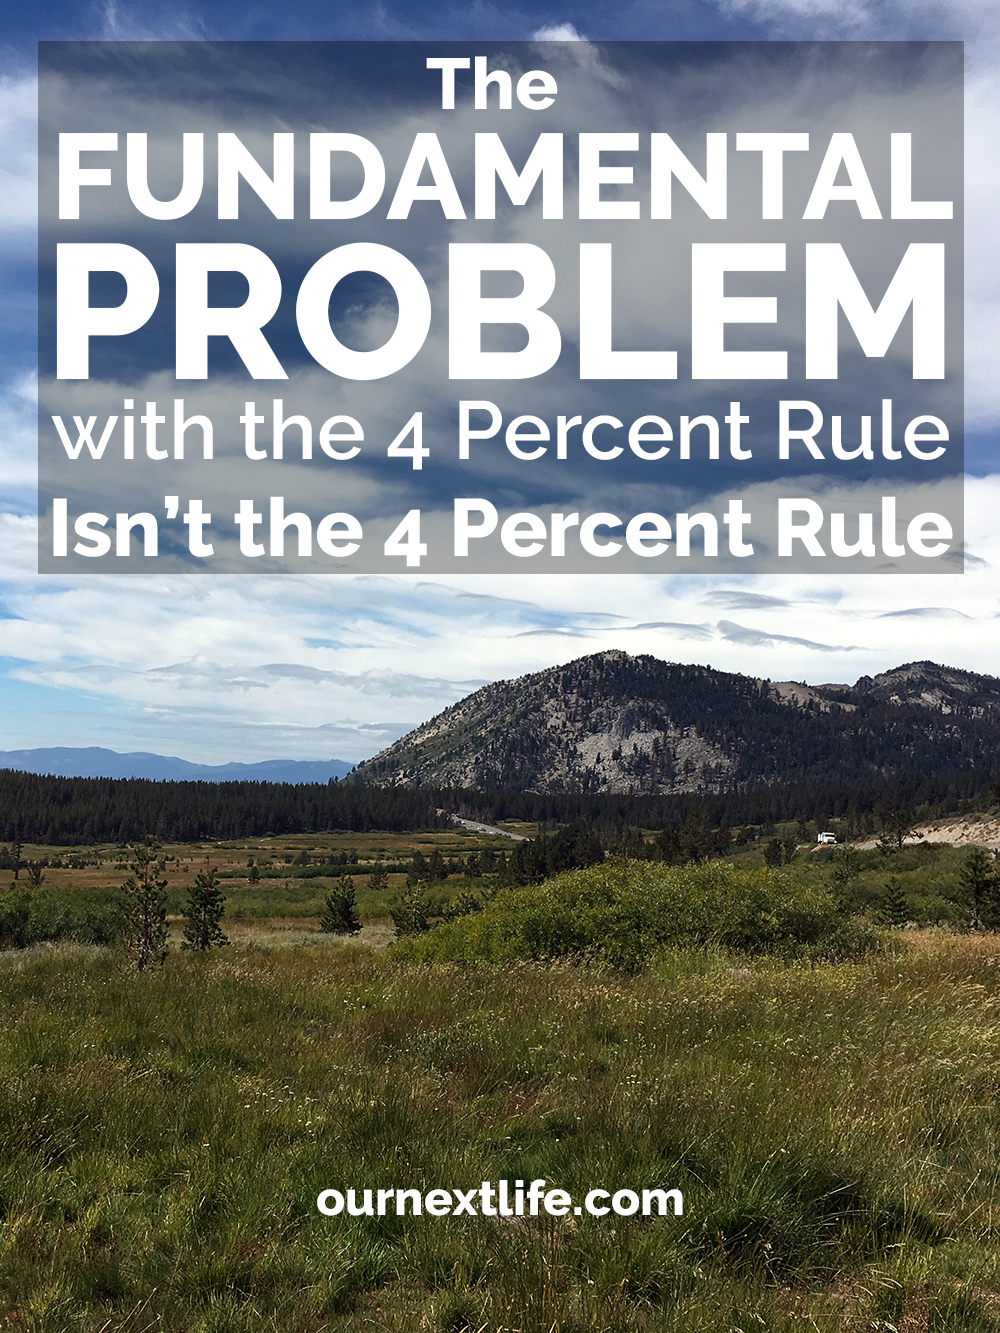 The Fundamental Problem with the 4 Percent Rule Isn't the 4 Percent Rule // Early Retirement, financial independence, safe withdrawal rates, level spending assumptions, inflation, expenses that outpace inflation, Medicare expenses, Social Security and pensions that don't keep up with inflation -- the list goes on!